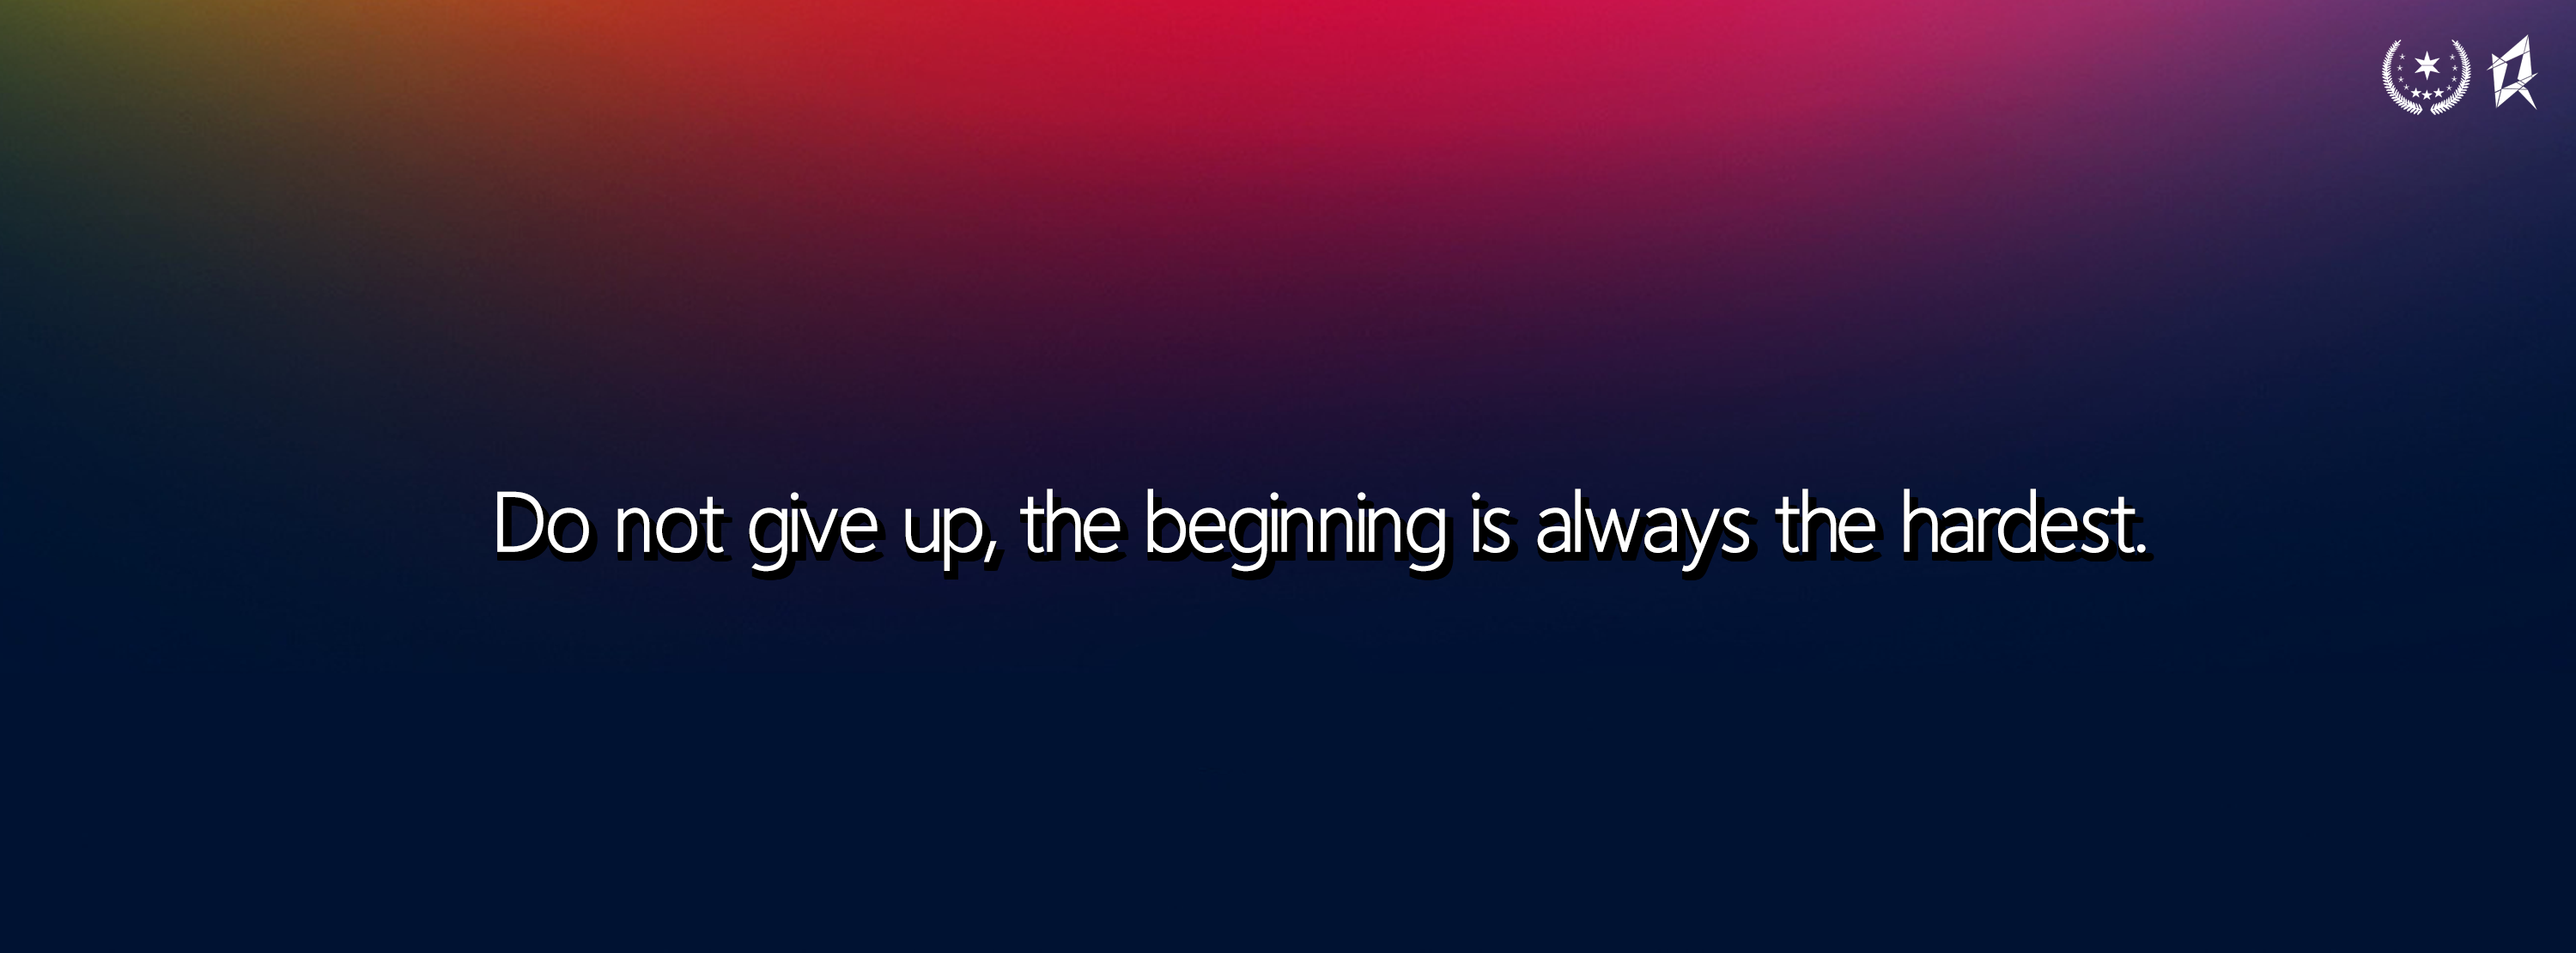 Do Not Give Up The Beginning Is Always The Hardest Startup Quote